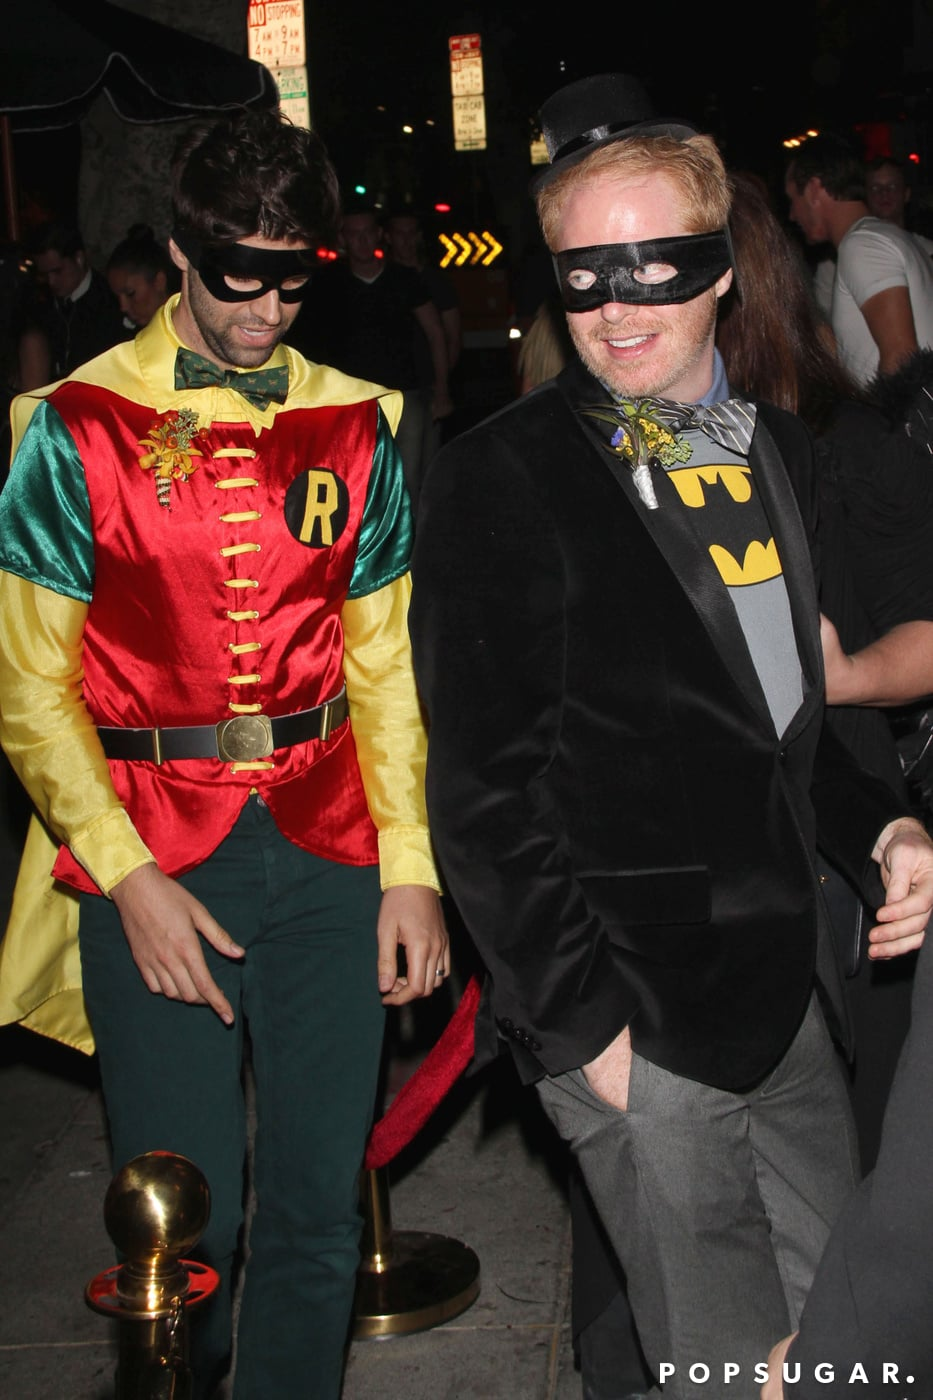 Jesse Tyler Ferguson and Justin Mikita went to a Hollywood Halloween party as Batman and Robin.